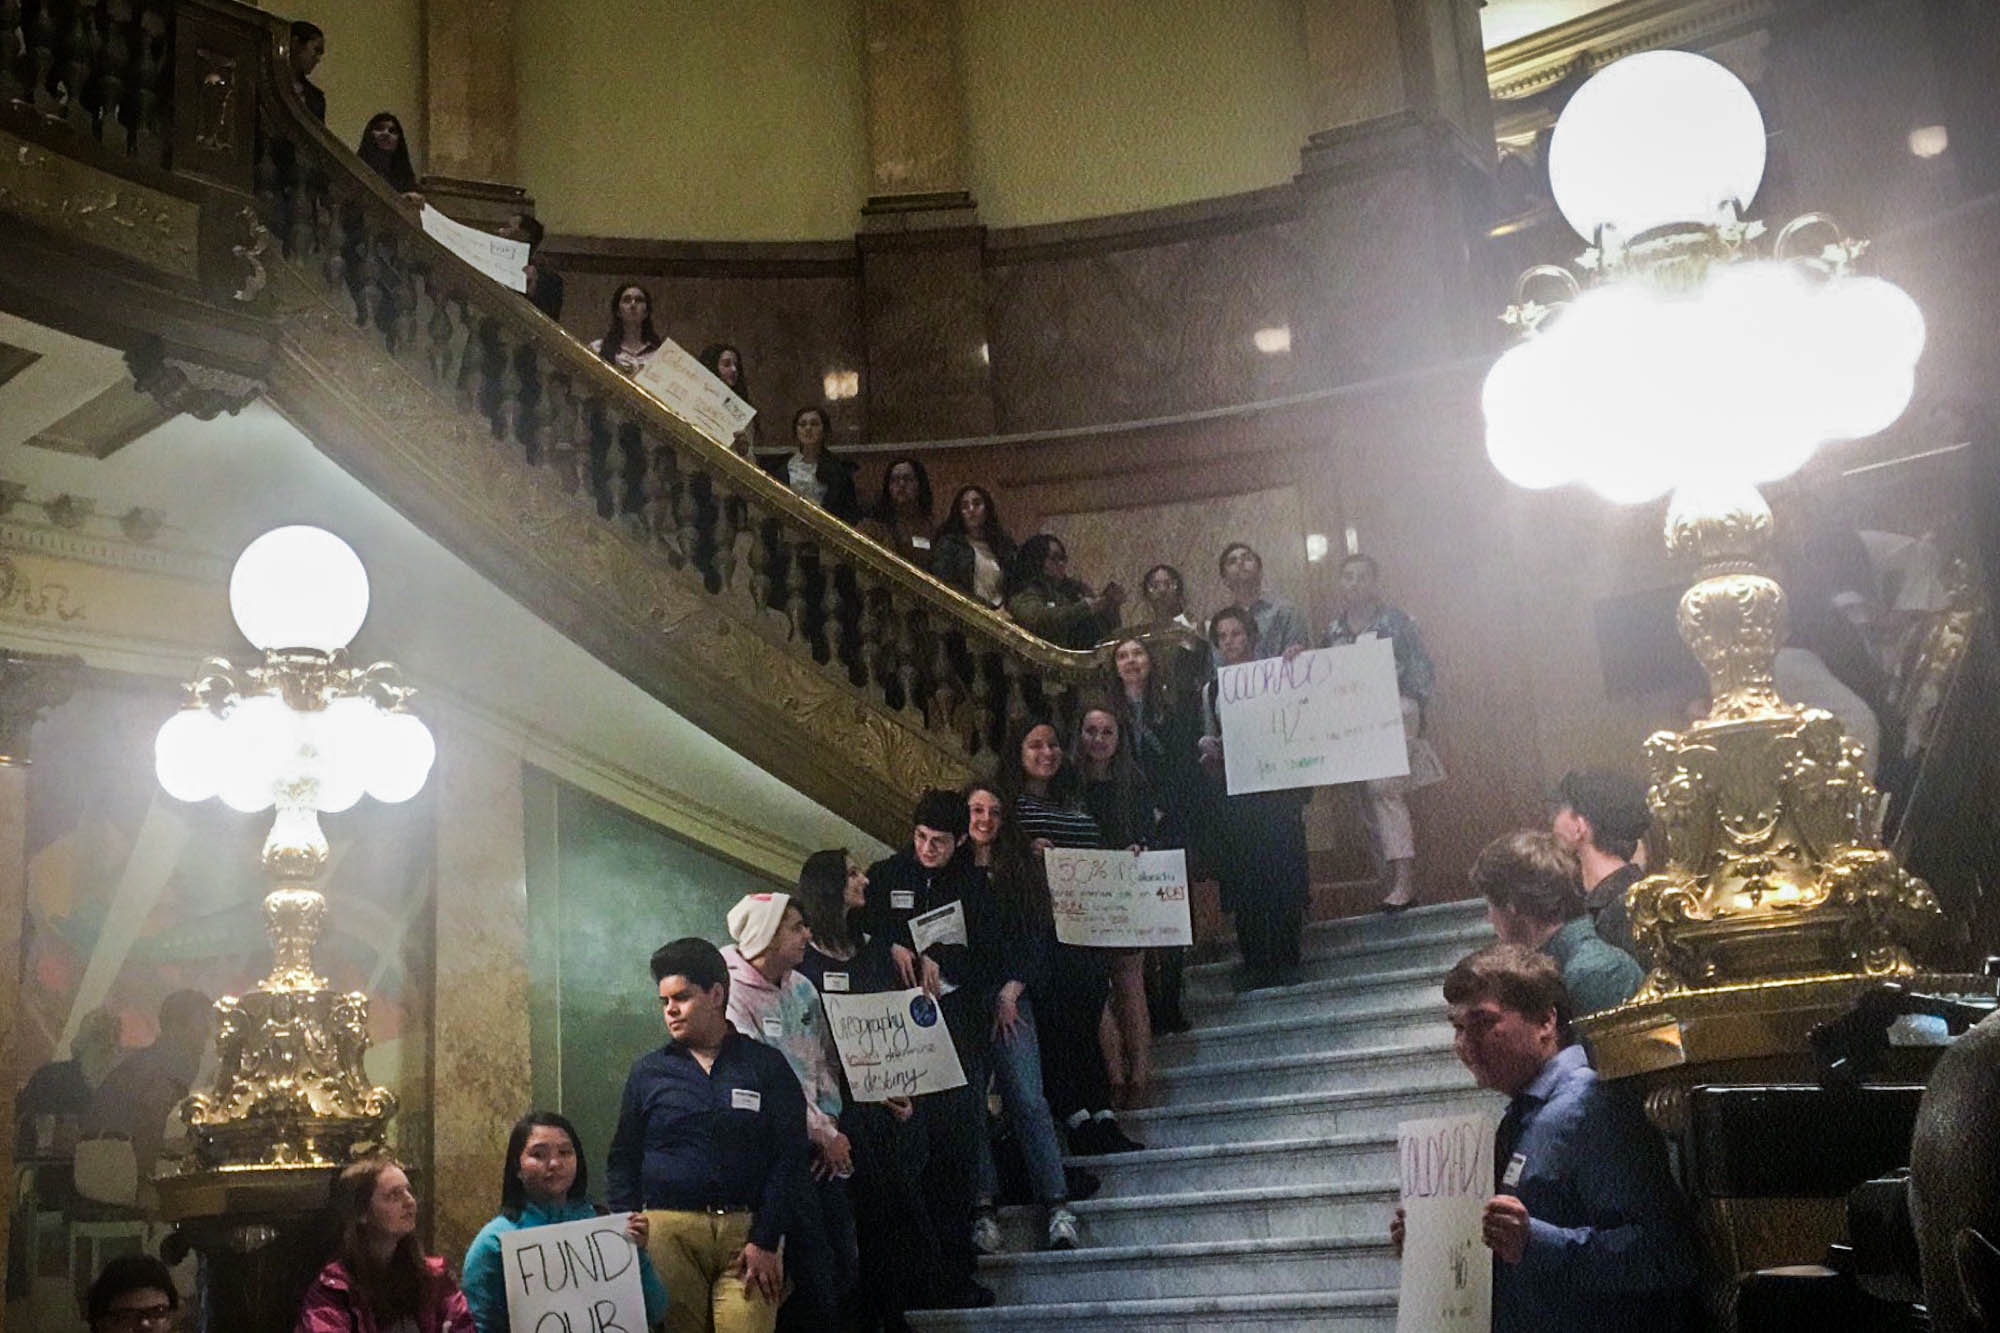 Over 100 students across the state came to the state Capitol on February 20, 2020 for Lobby Day. They are advocating for school finance reform.